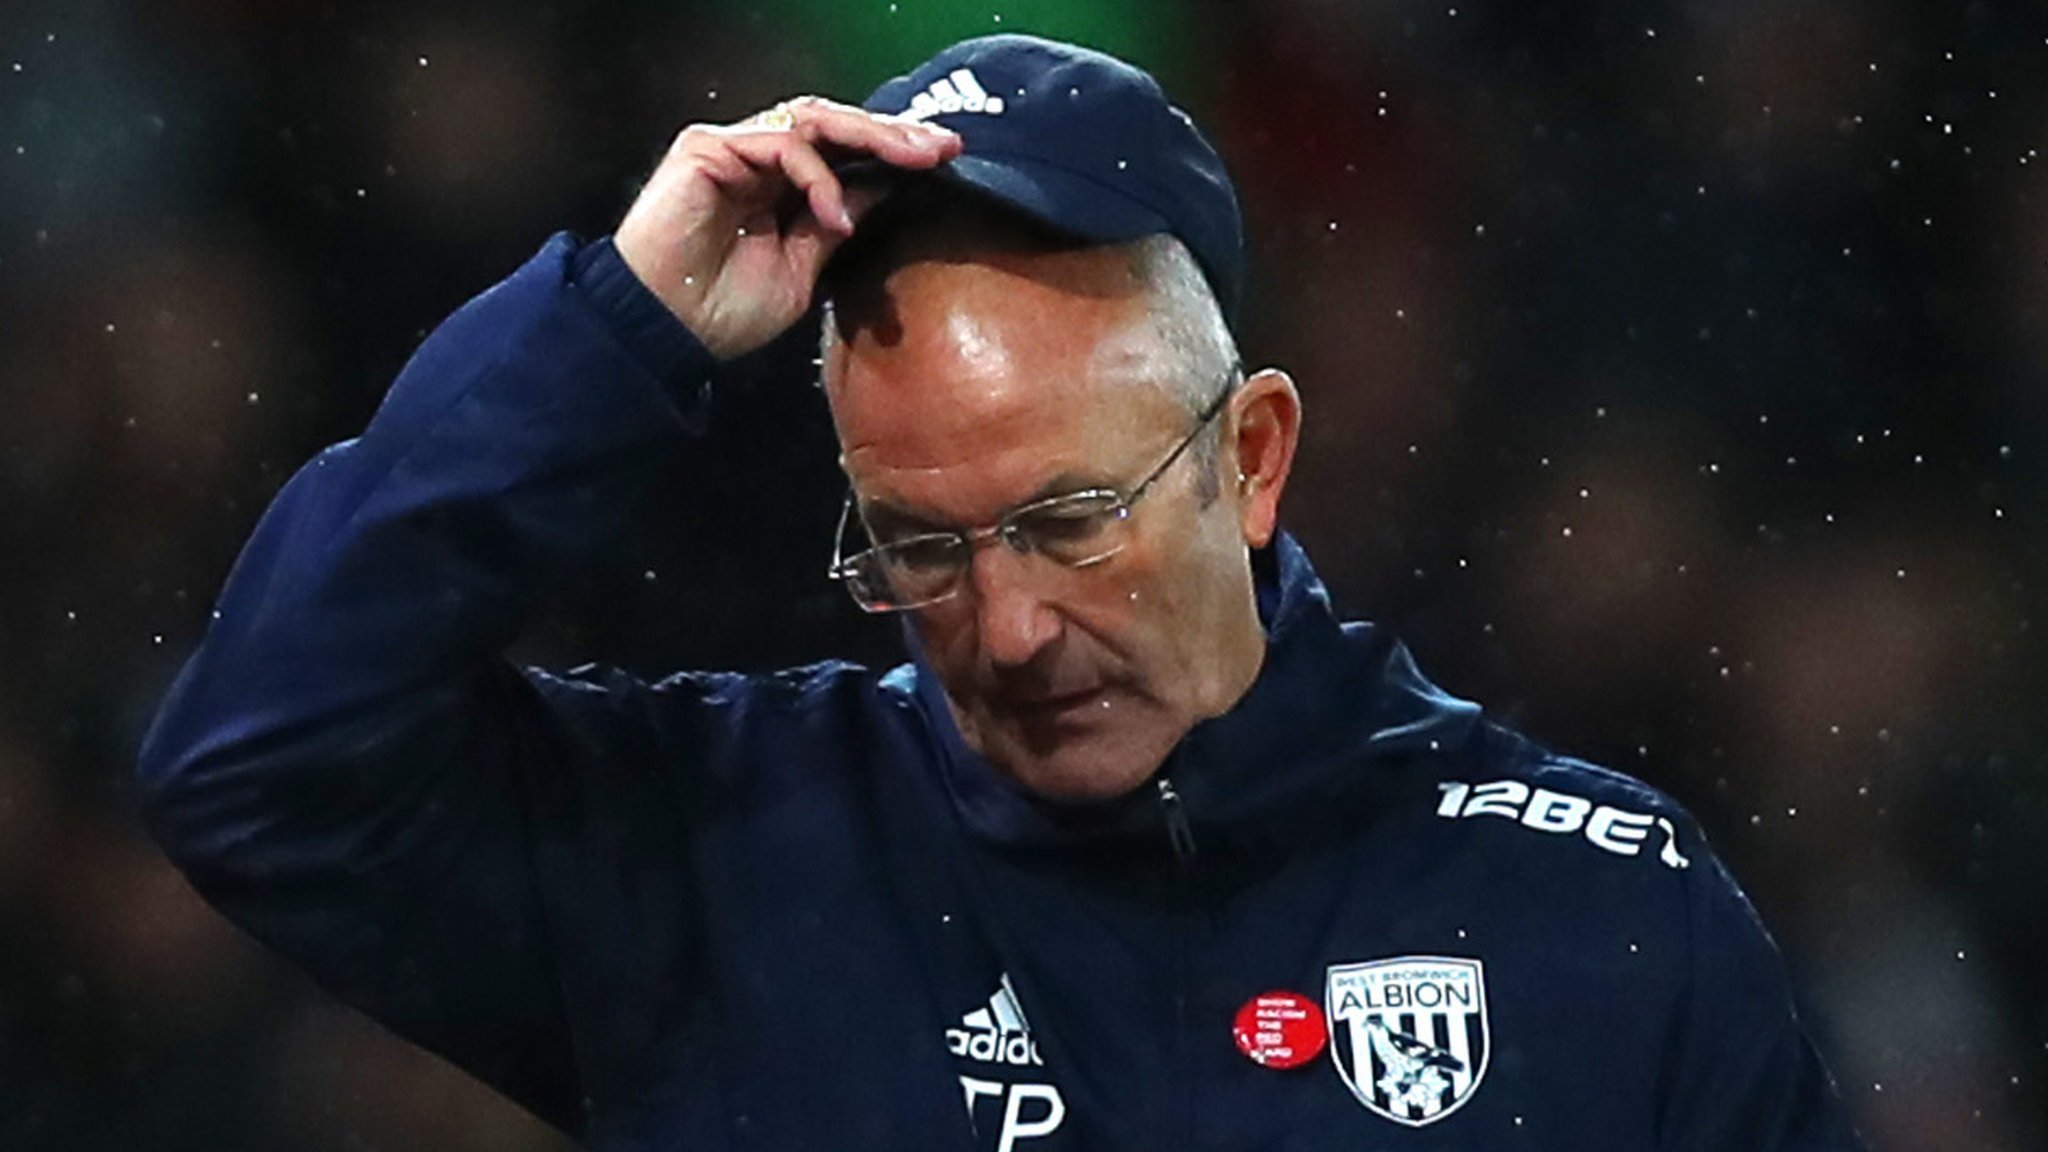 Tony Pulis: West Brom boss 'not bothered by pressure' amid speculation about his job